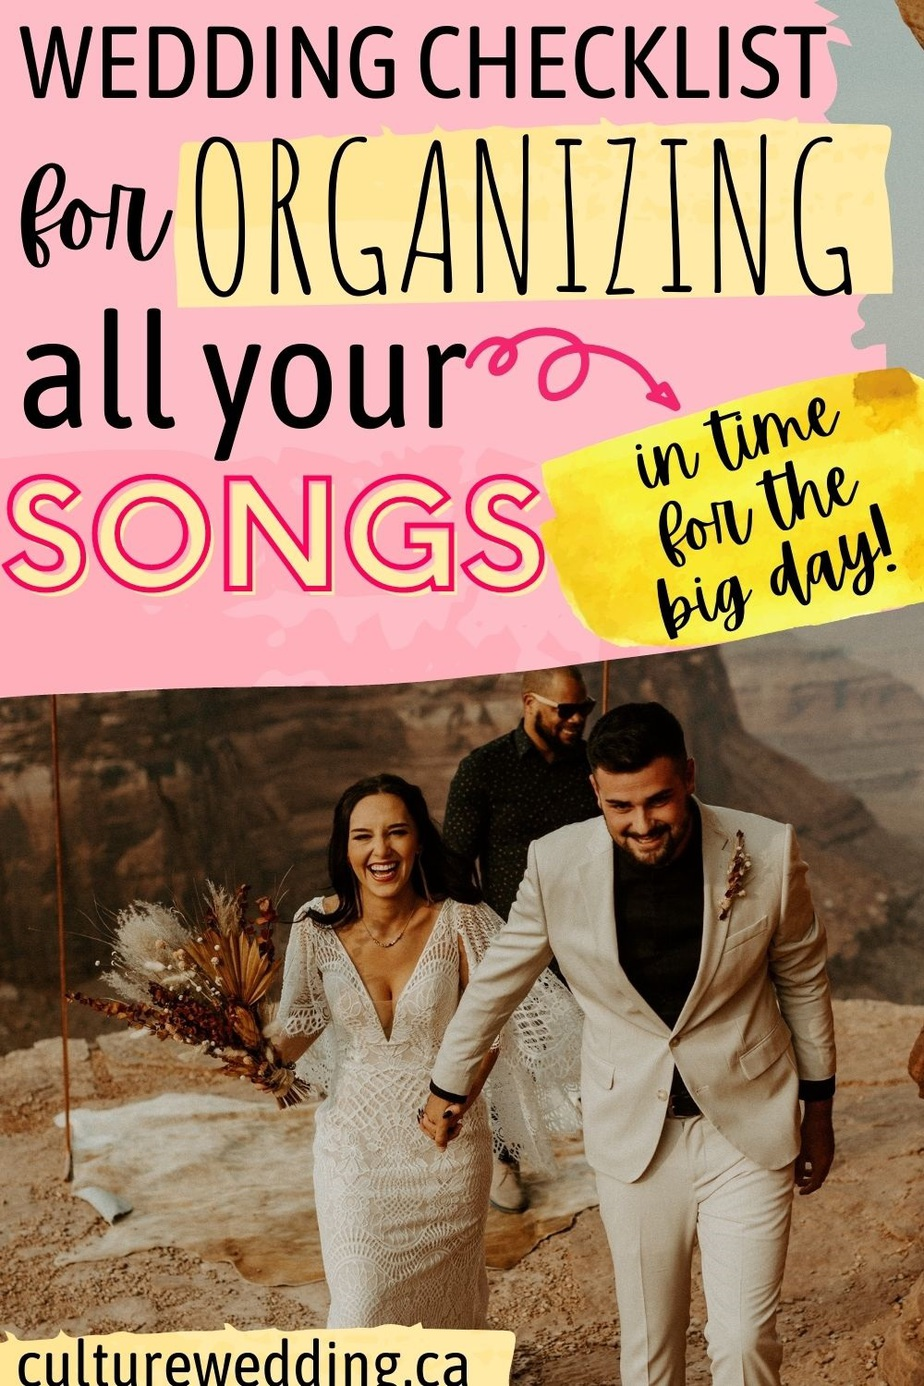 We've got all the checklists that will make planning your wedding a breeze! Grab this wedding song checklist printable today and organize your wedding song list today. Picking out the right music for your wedding reception can be a daunting task. That's why we created this wedding song list printable to help!